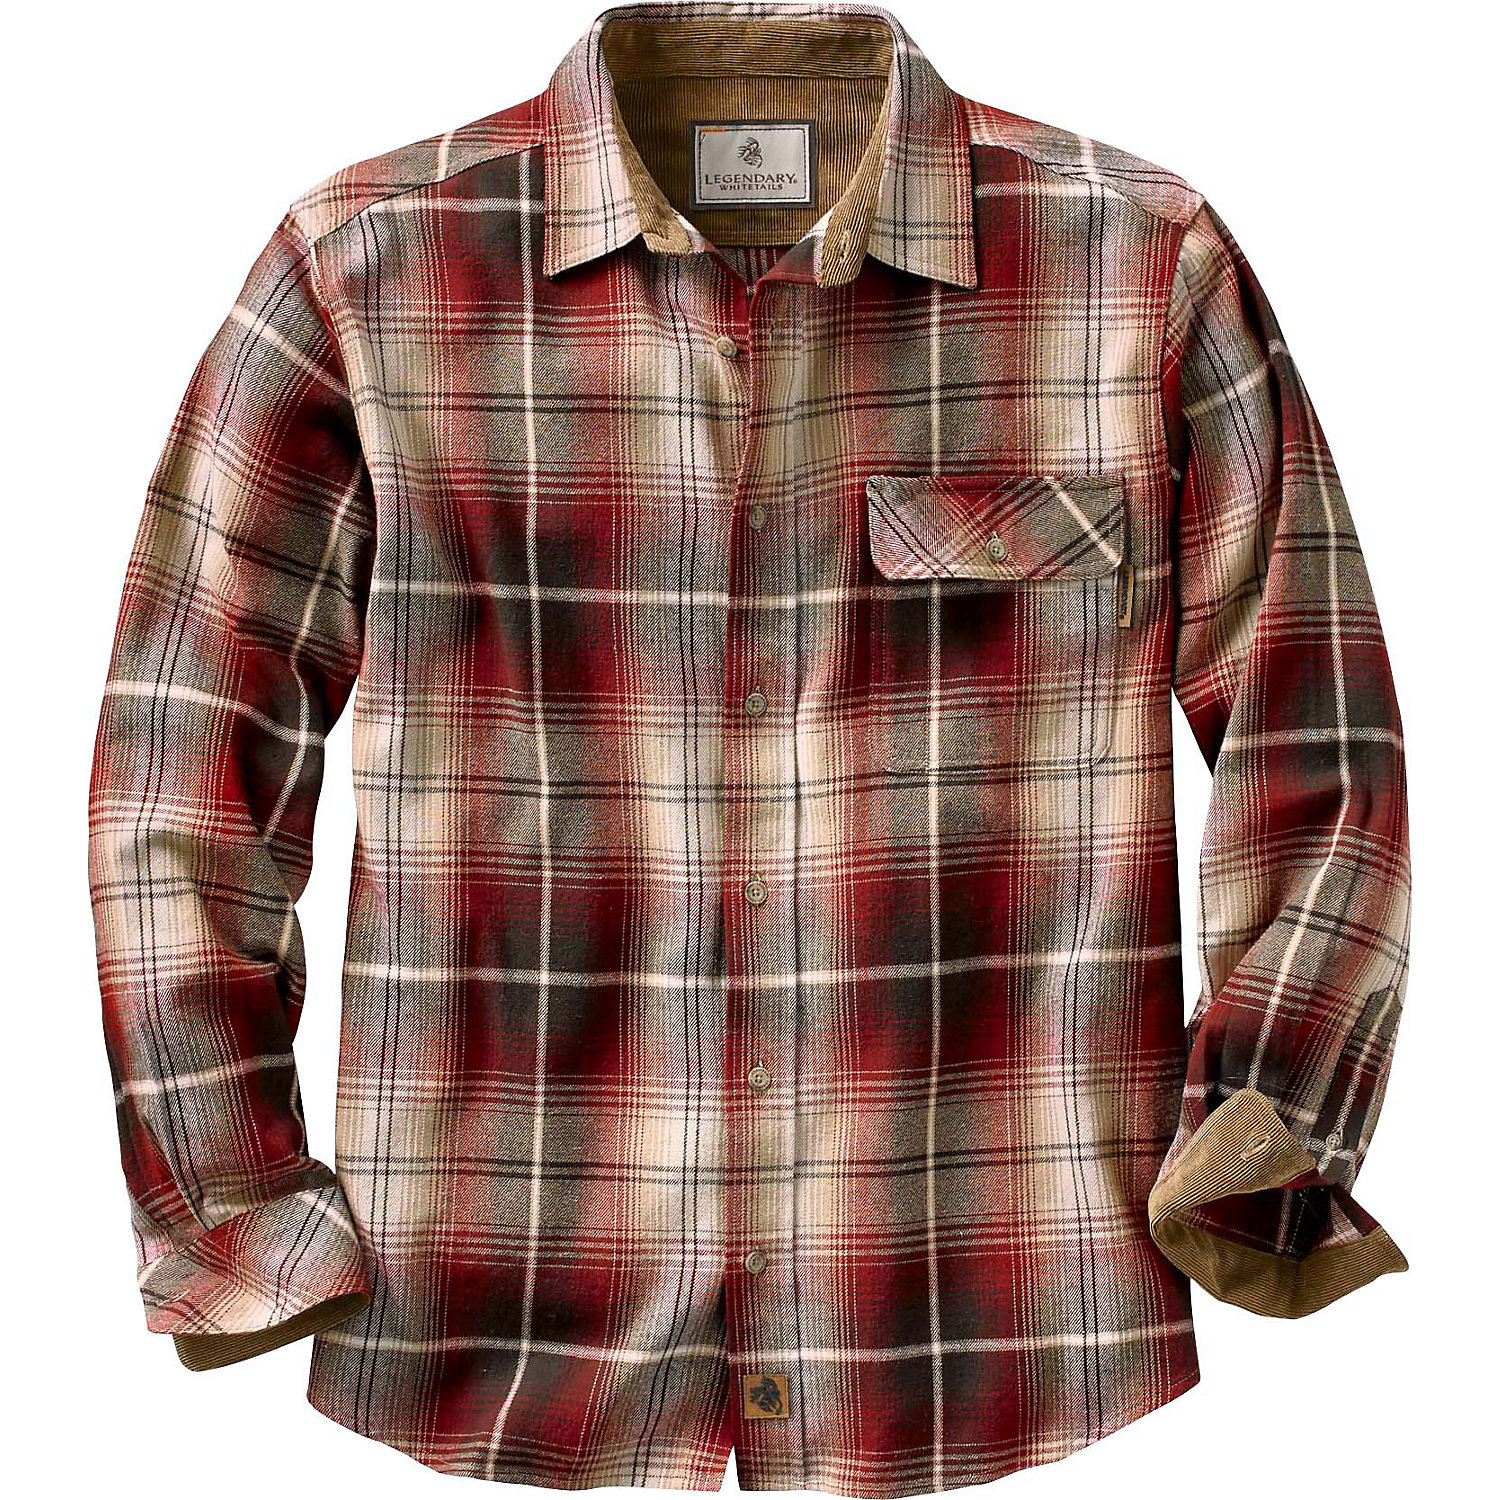 Mens Flannel Shirts. Easy, stylish & cool. Check out the flannel shirt, a casual staple for all your favorite laid-back outfits. Solid Style A flannel is perfect for looking effortless while relaxing on the weekend.